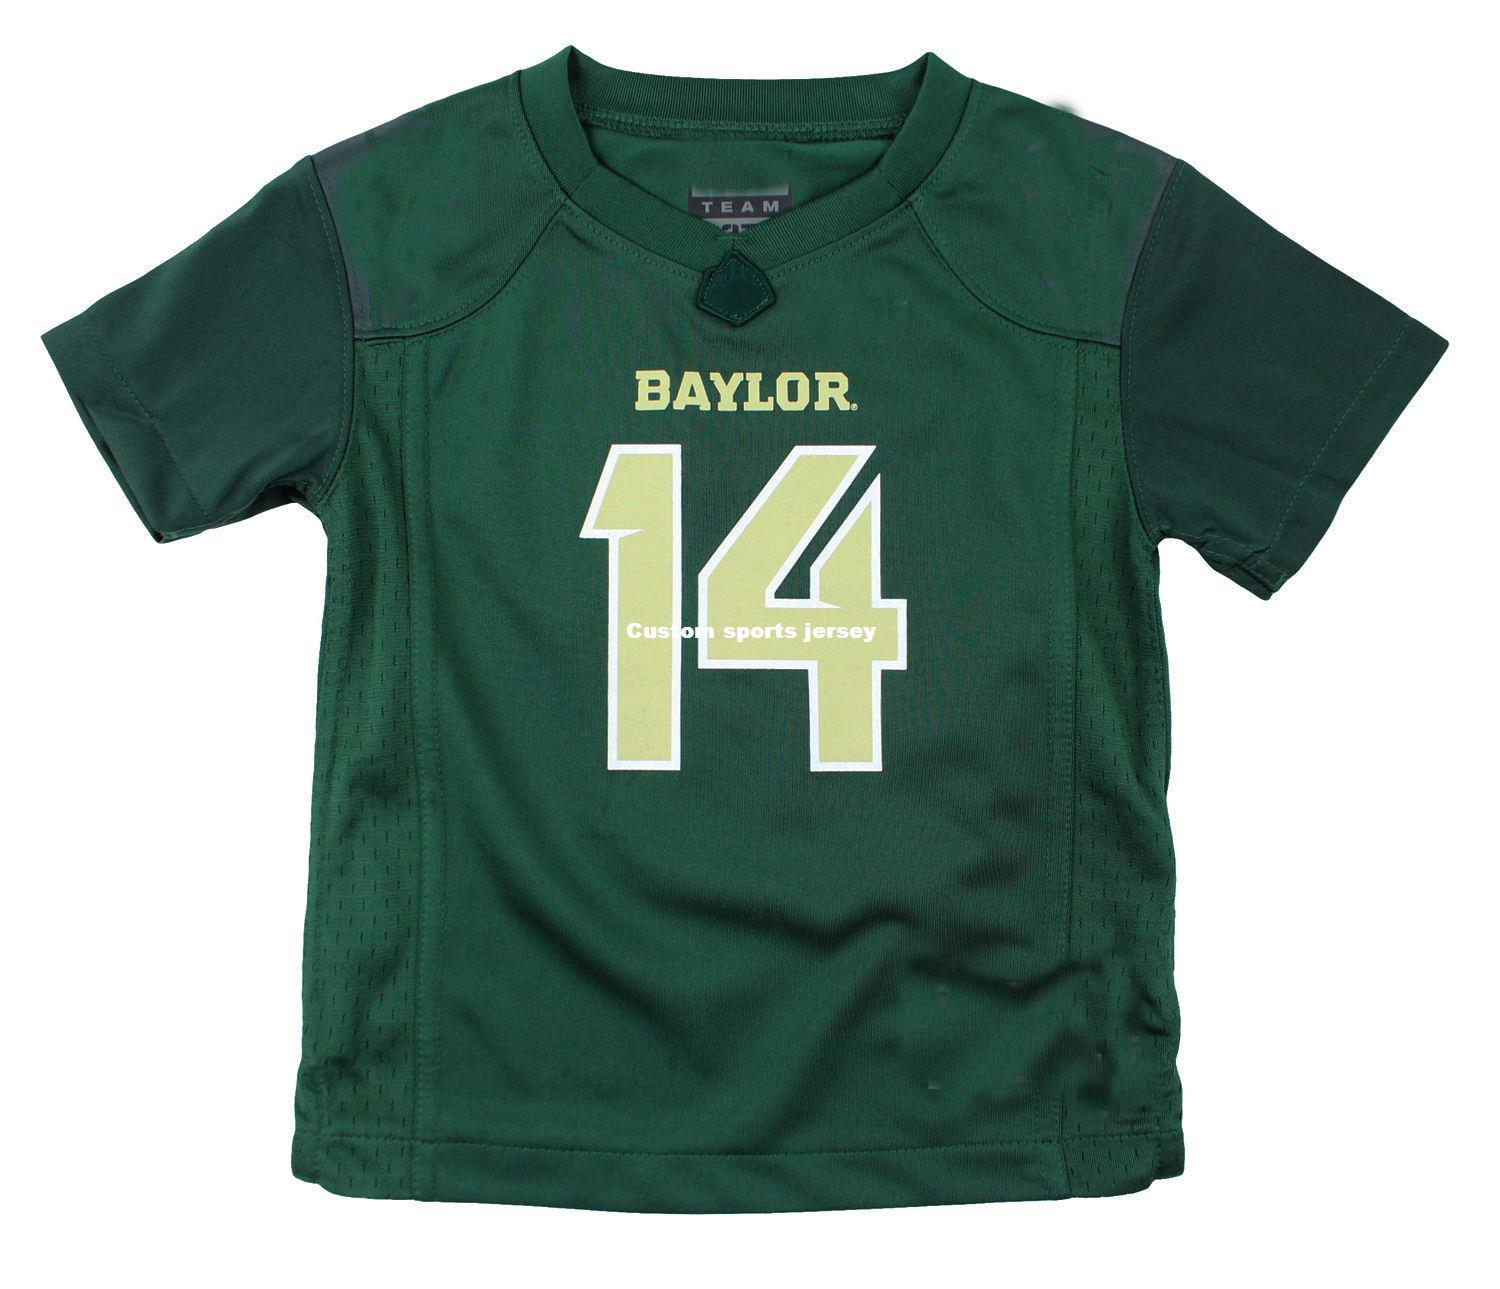 separation shoes ec592 0cf62 Cheap custom NCAA College Baylor Bears # 14 Football Jersey Green  Customized Any name number Stitched Jersey XS-5XL